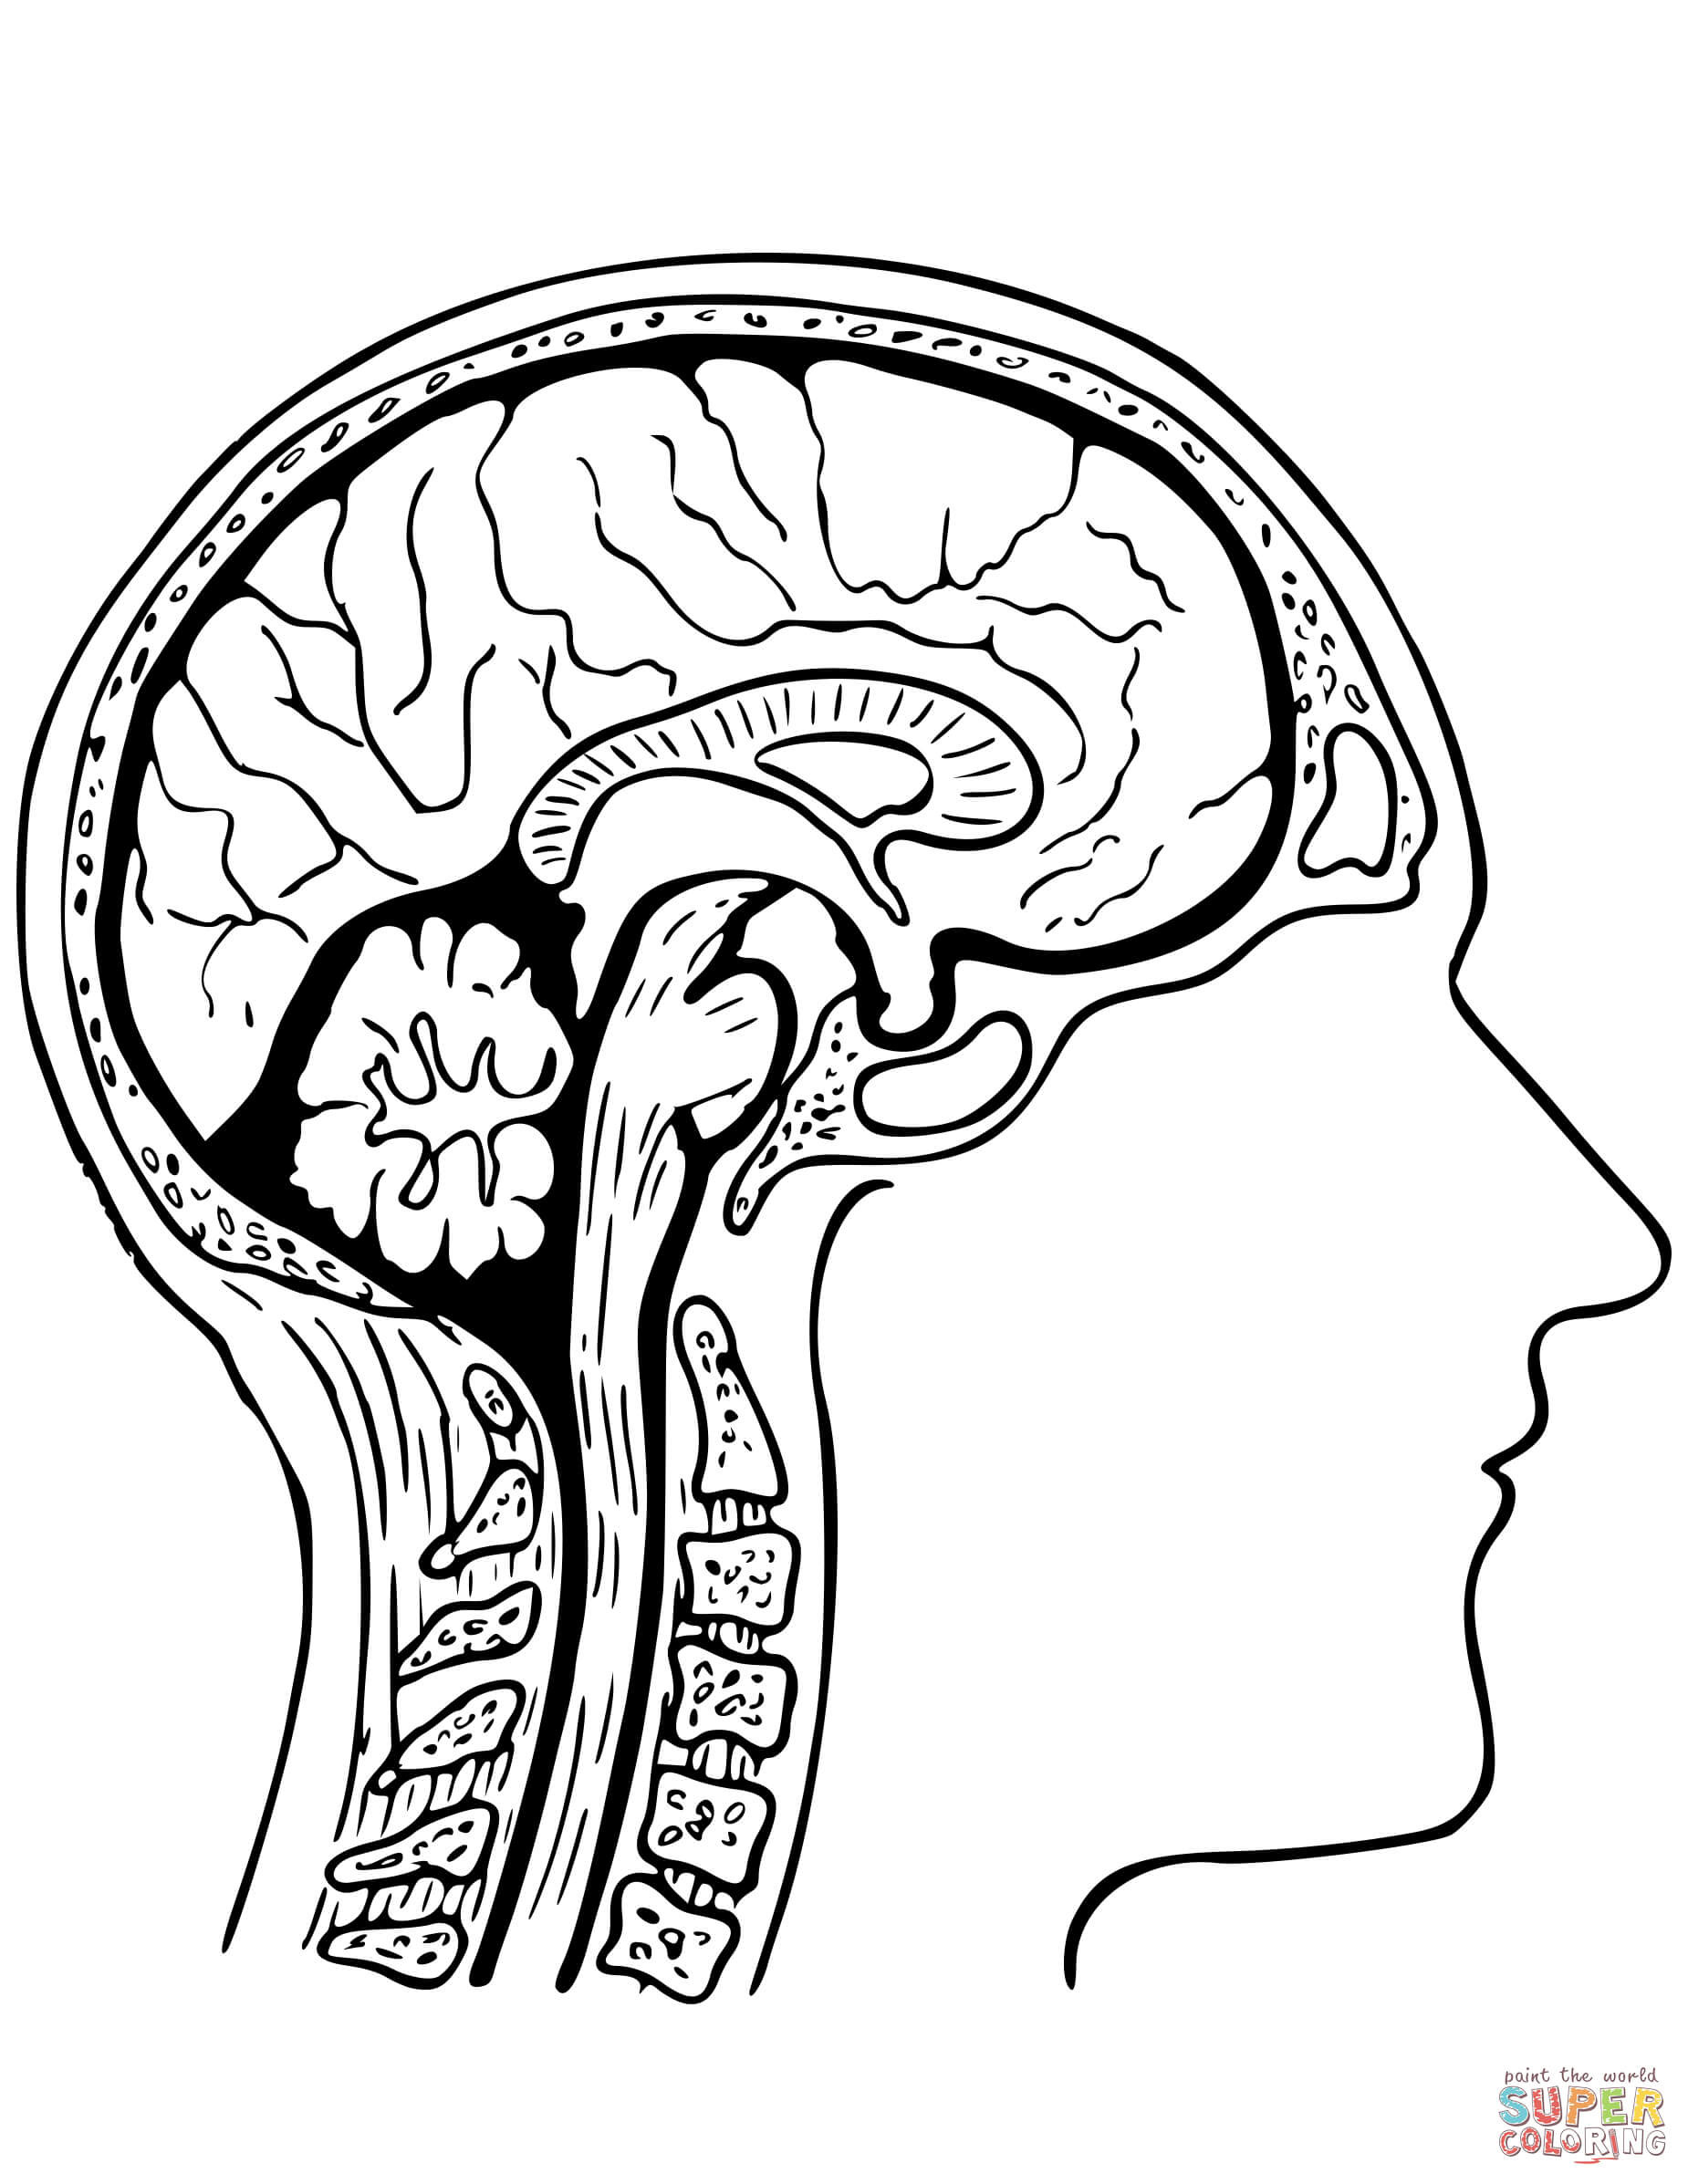 Brain Coloring Sheet  Dibujo de Cerebro Humano para colorear